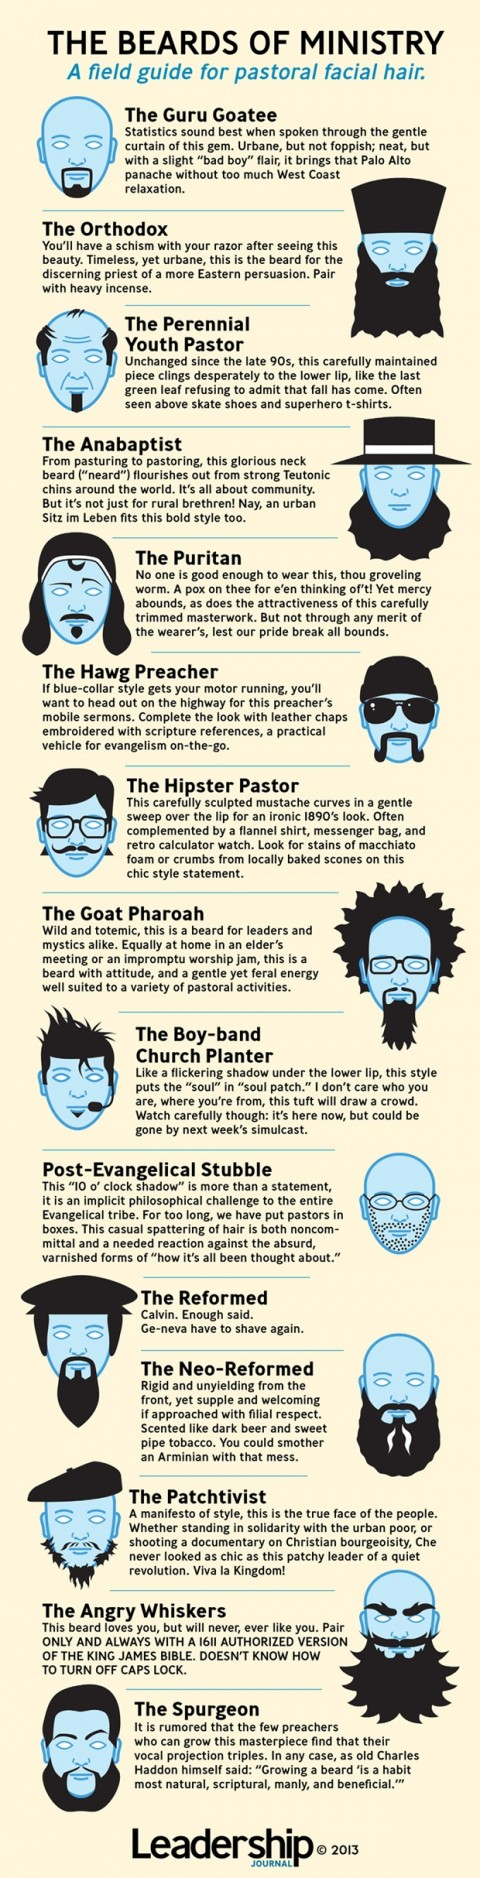 The staggering diversity of pastors' facial hair, in one graphic - The Washington Post